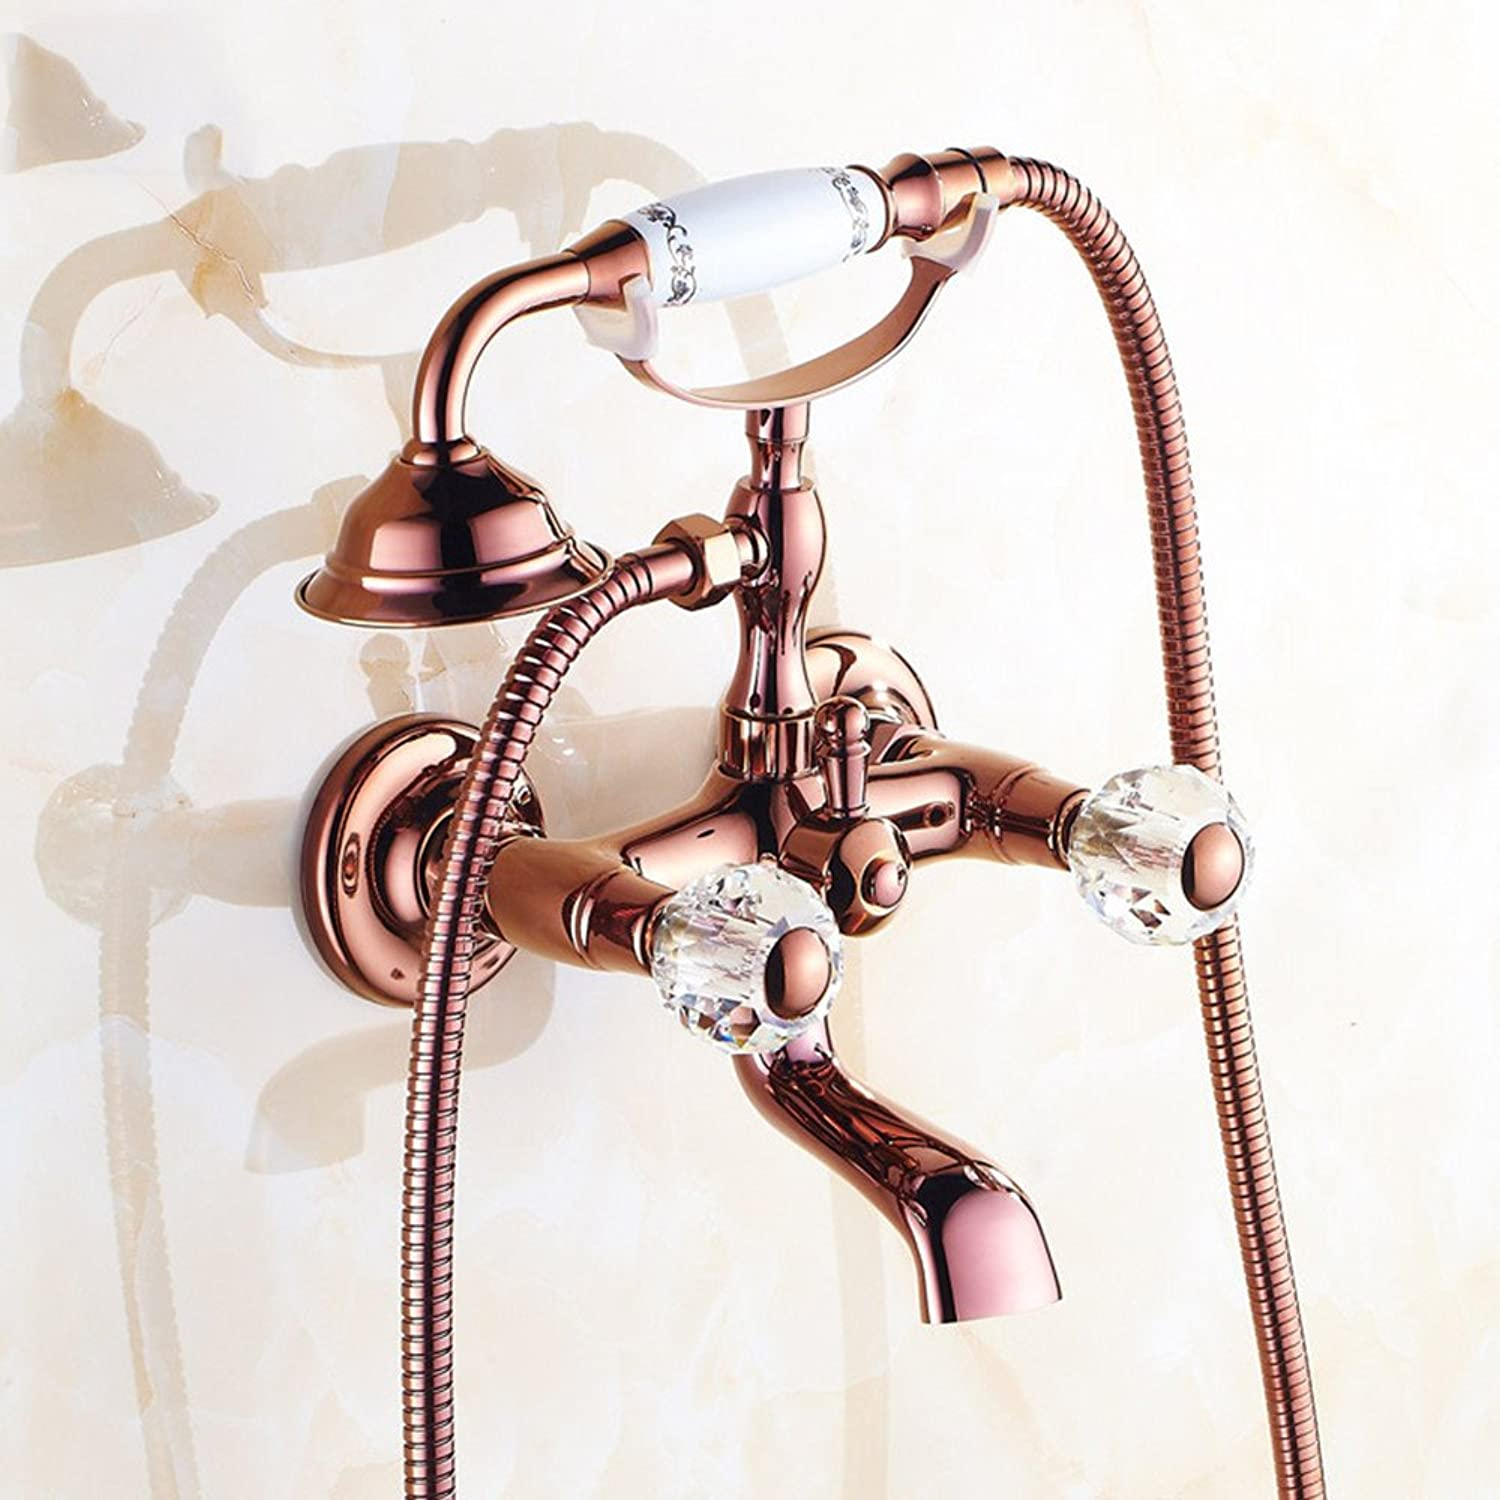 ZQ@QXThe copper-colord pink gold European-style shower kit